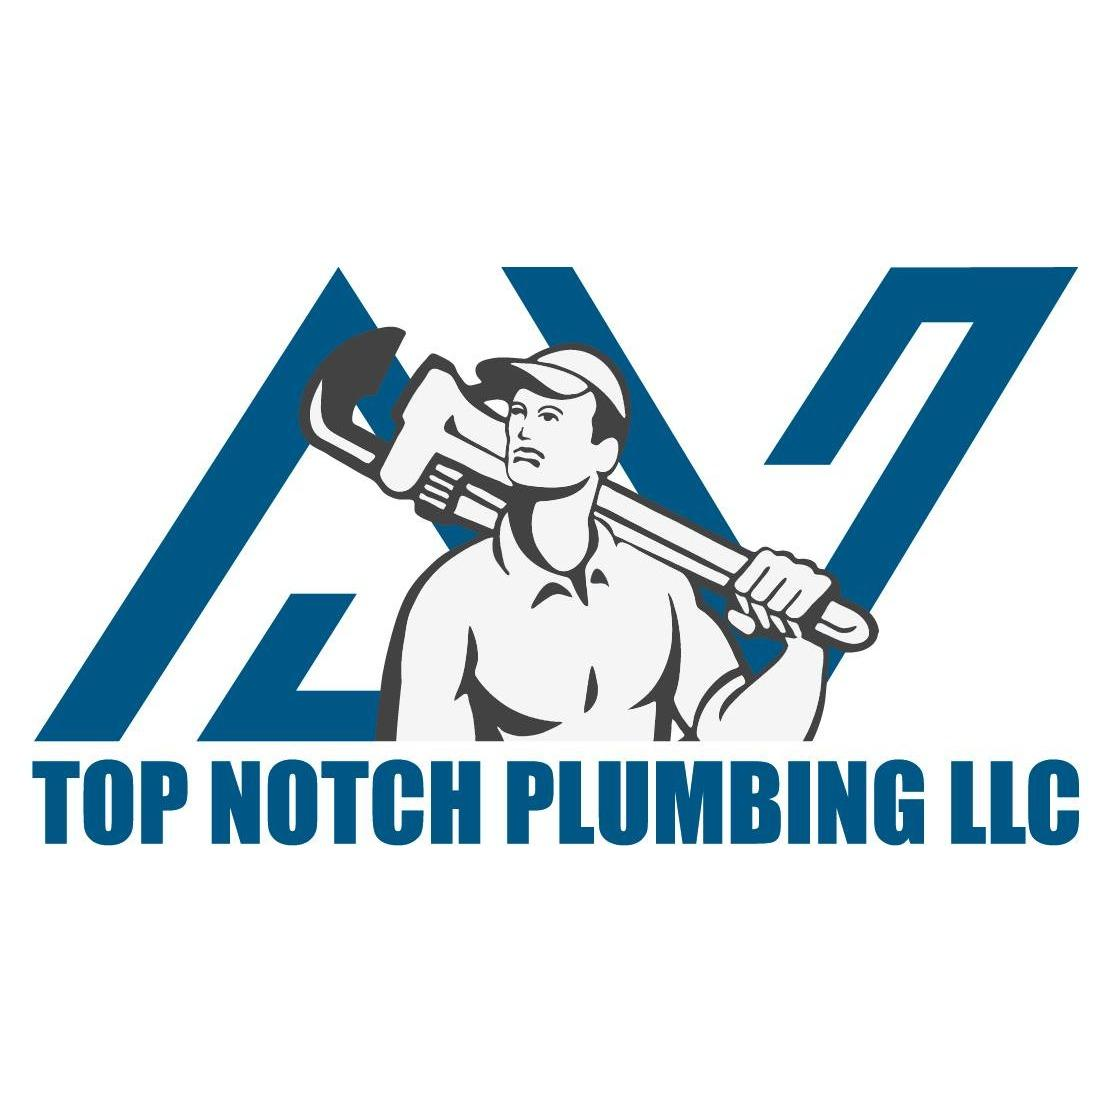 Top Notch Plumbing LLC